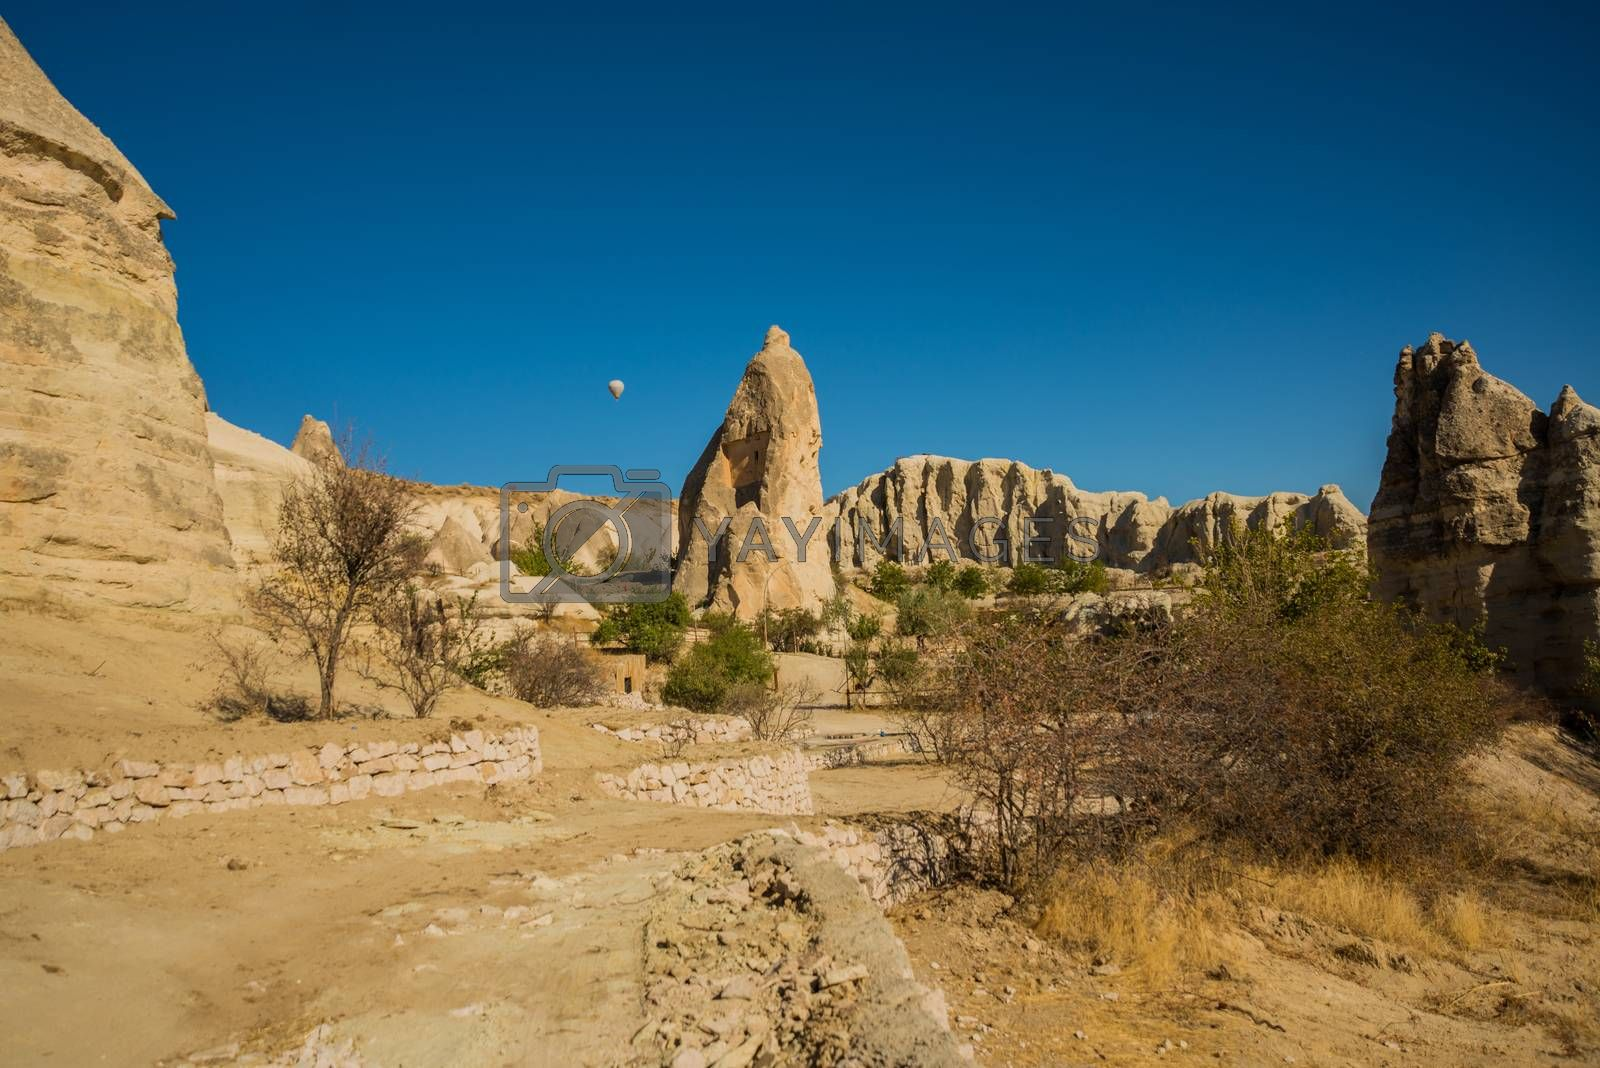 Cappadocia, Turkey: Flying in a balloon. Mountain view in summer in Sunny weather. The great tourist attraction of Cappadocia - balloon flight.